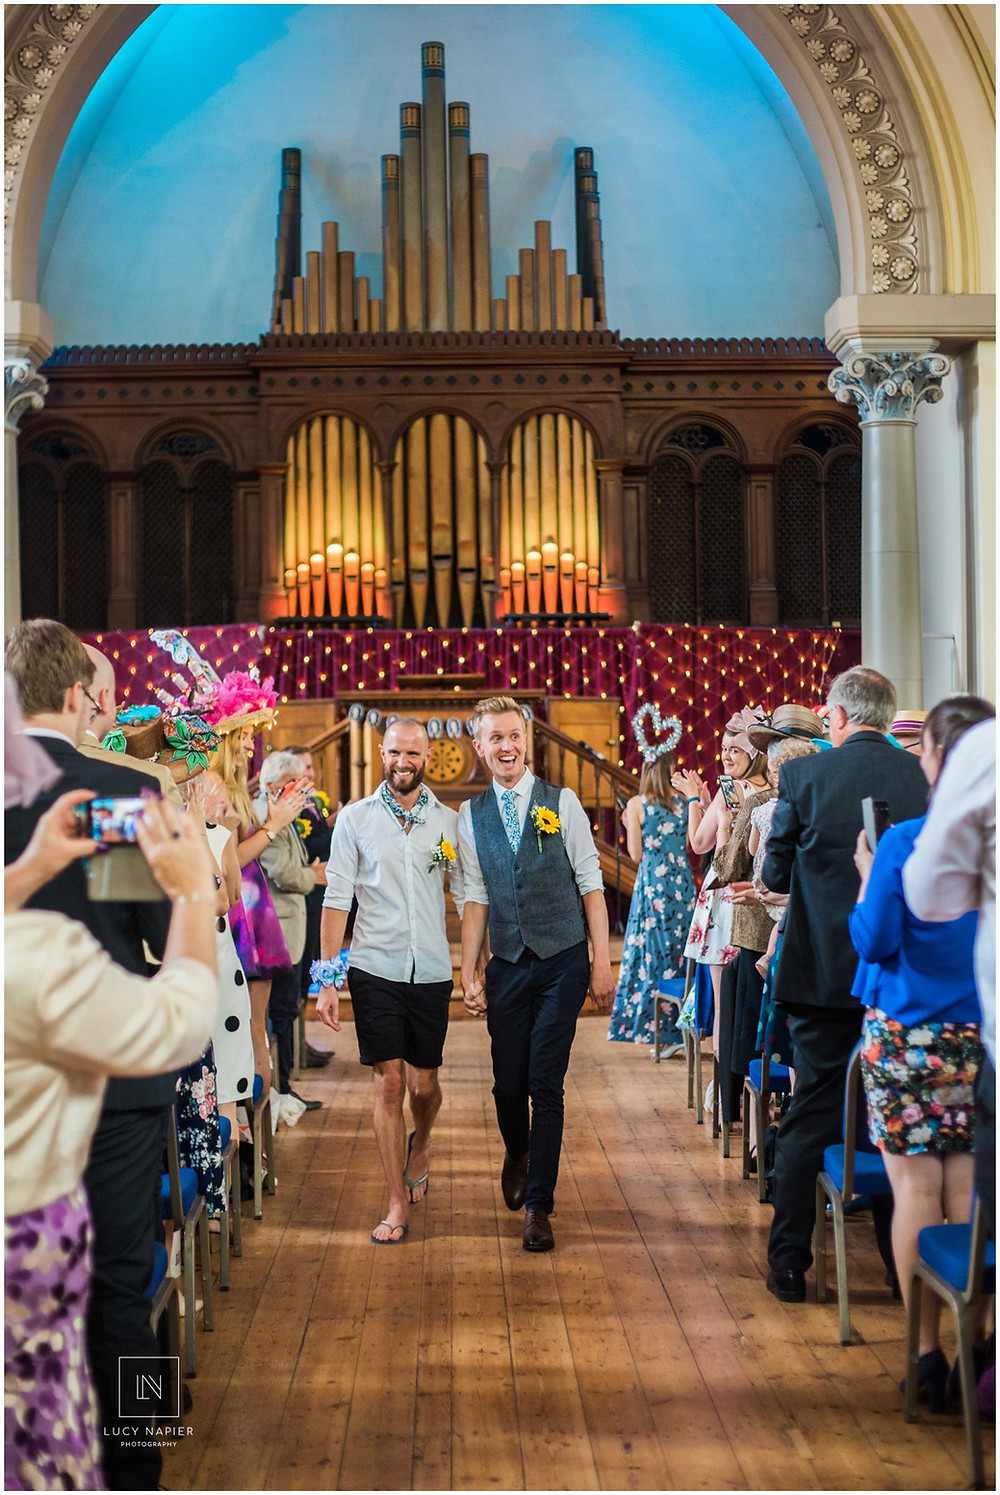 the grooms walk back down the aisle after getting married